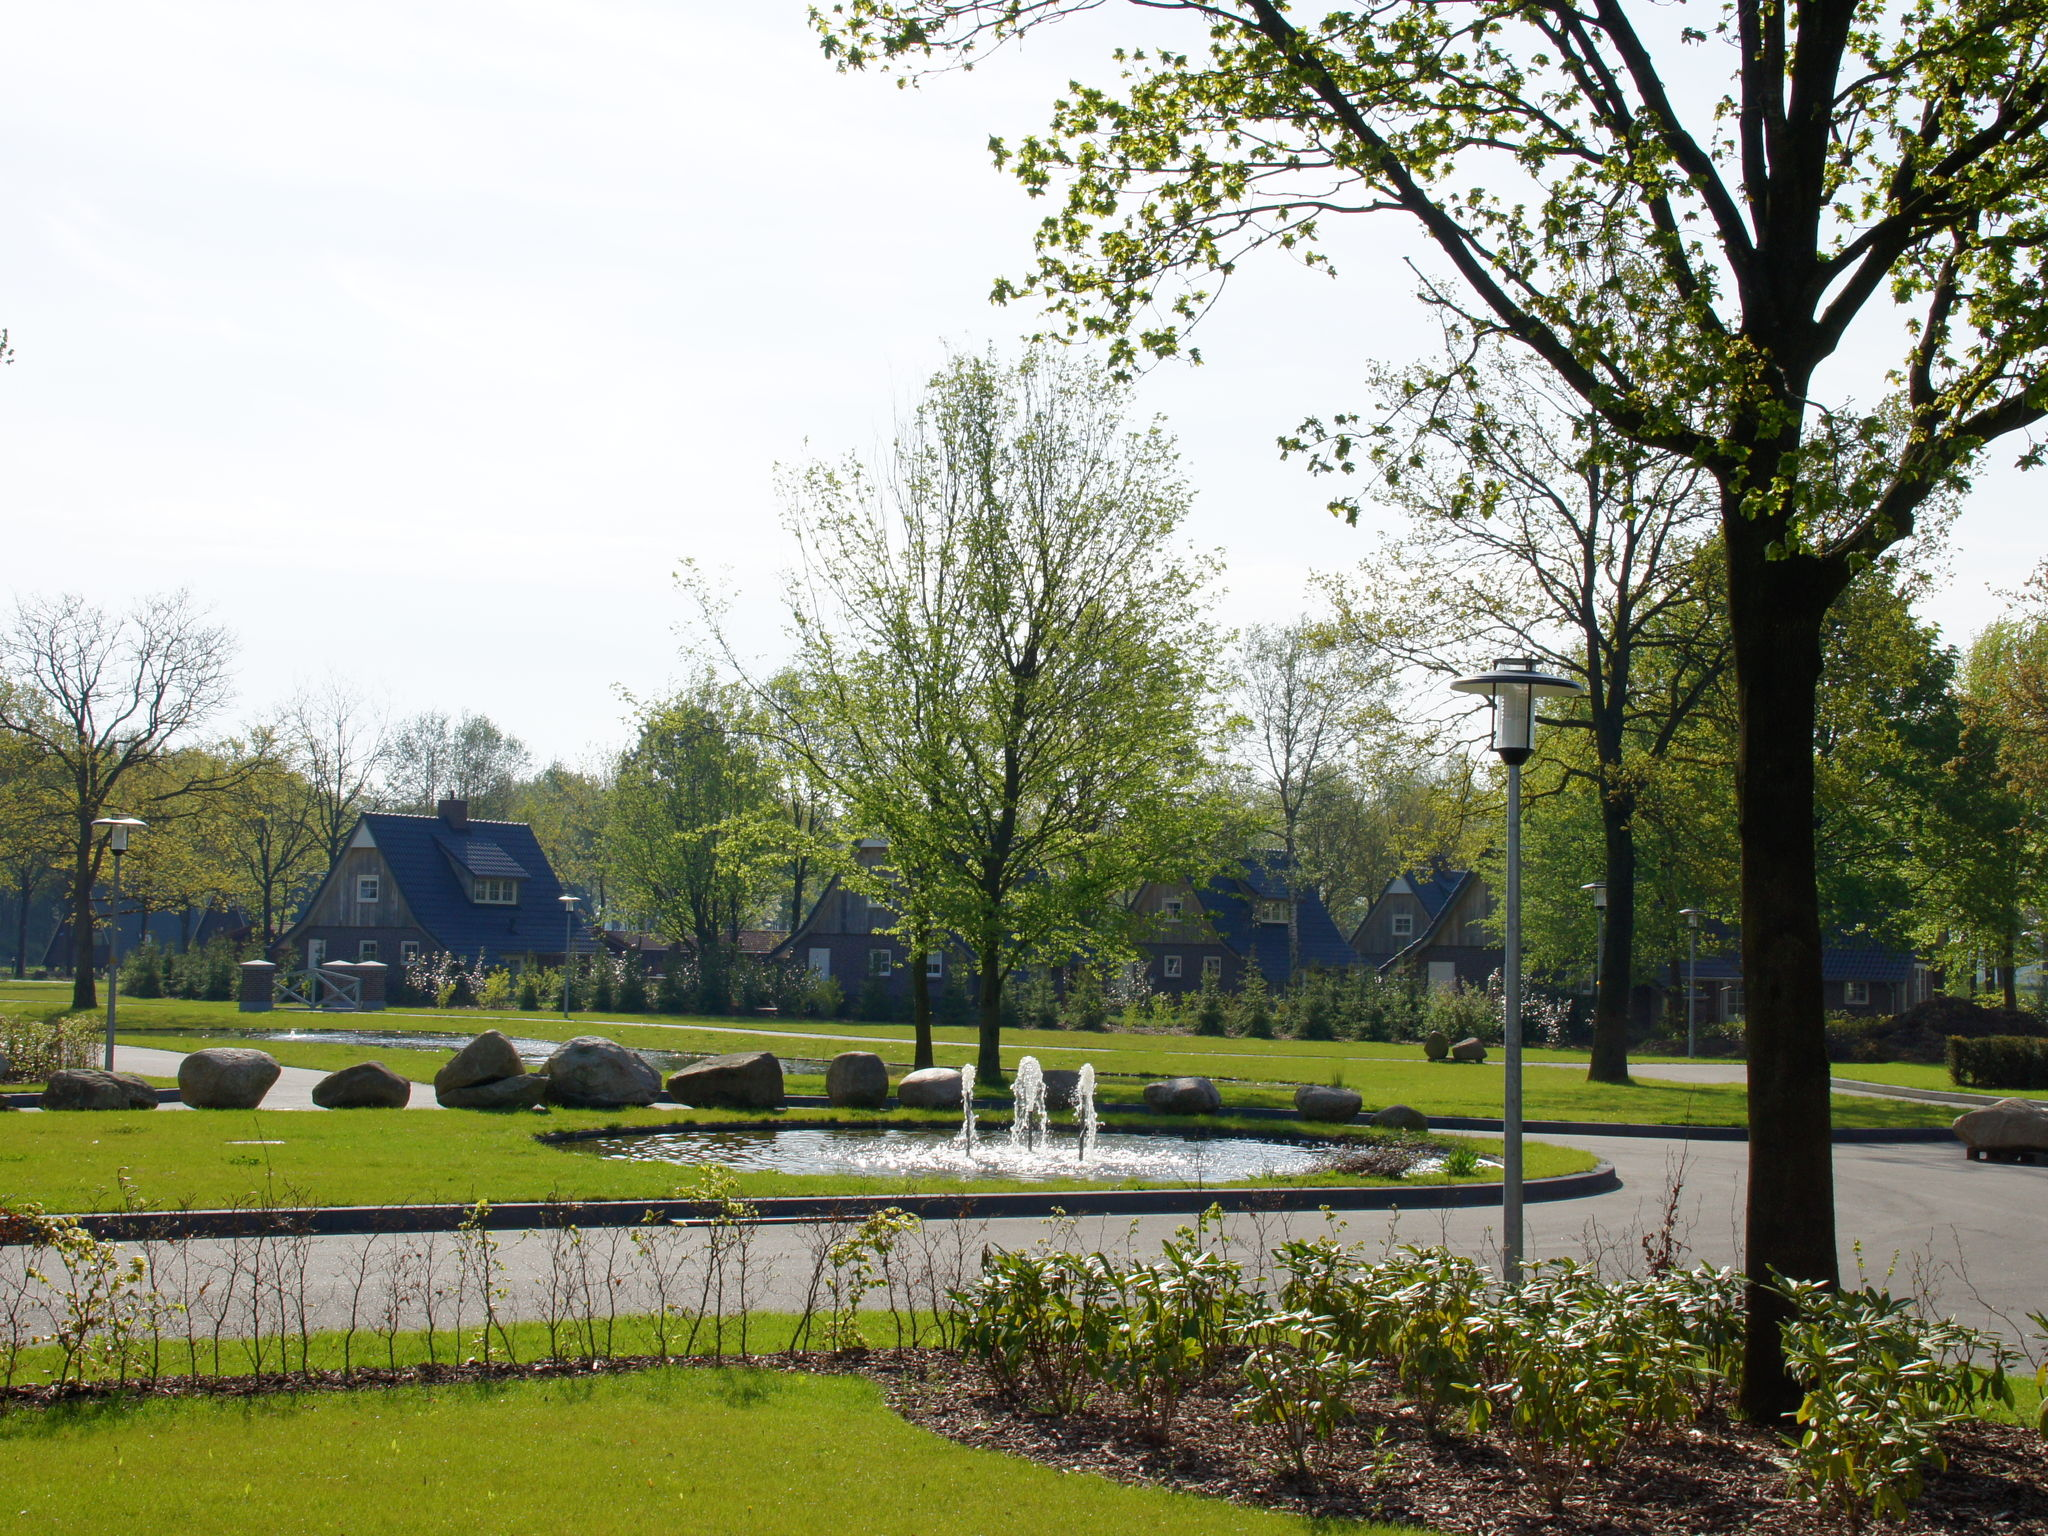 Holland | Overijssel | Holiday home Hof van Salland - Wellness Lodges 2 persoons | all year | ParkFacilities